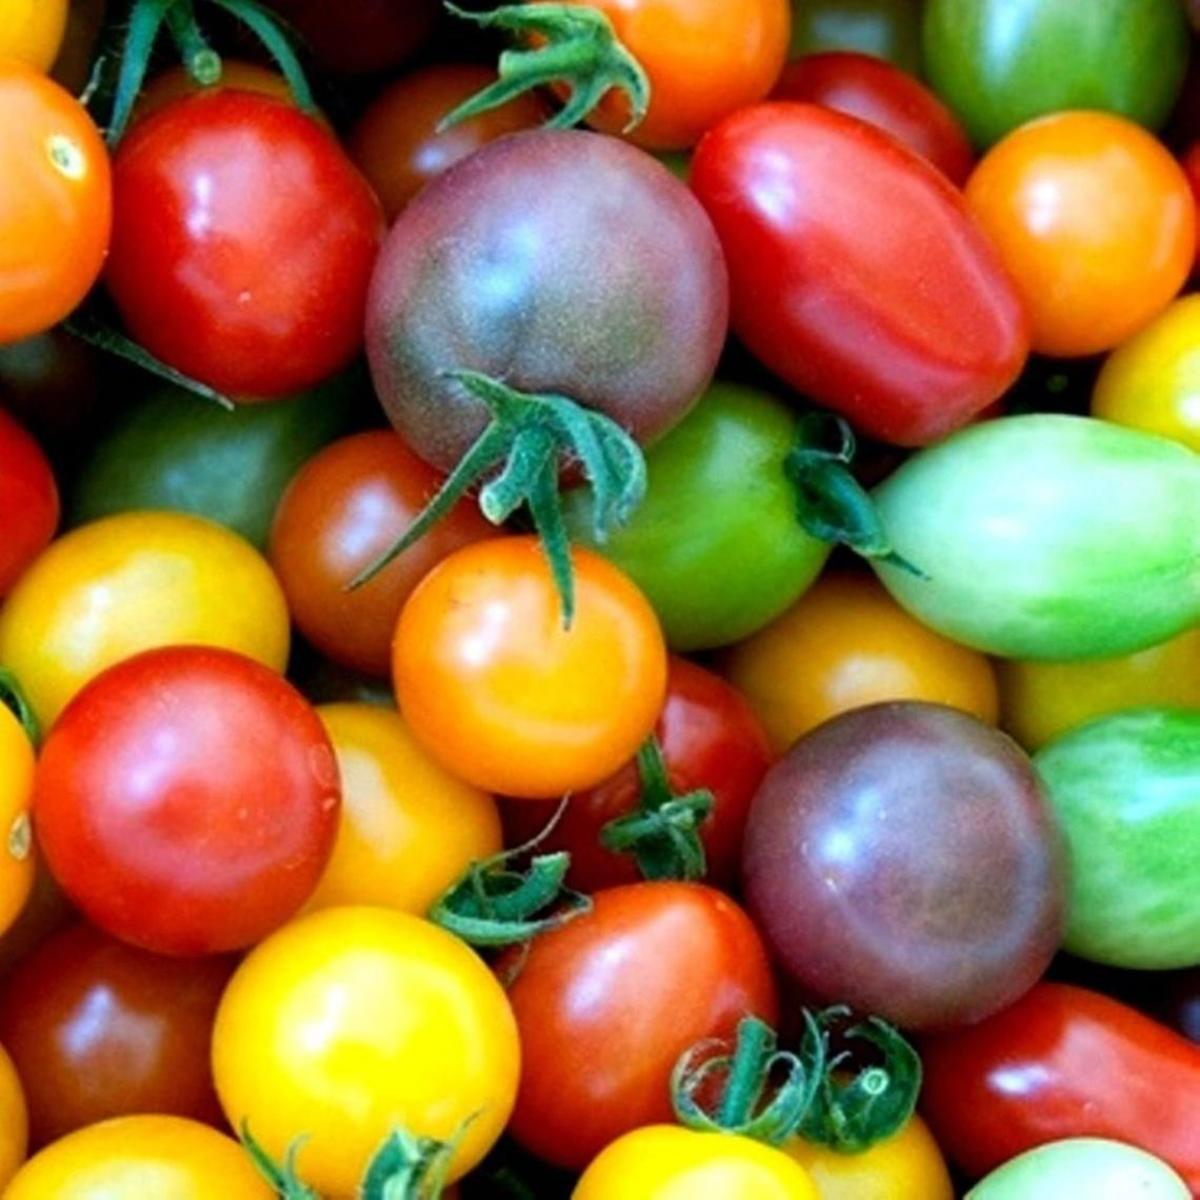 Mixture of different colors of cherry and grape tomatoes.